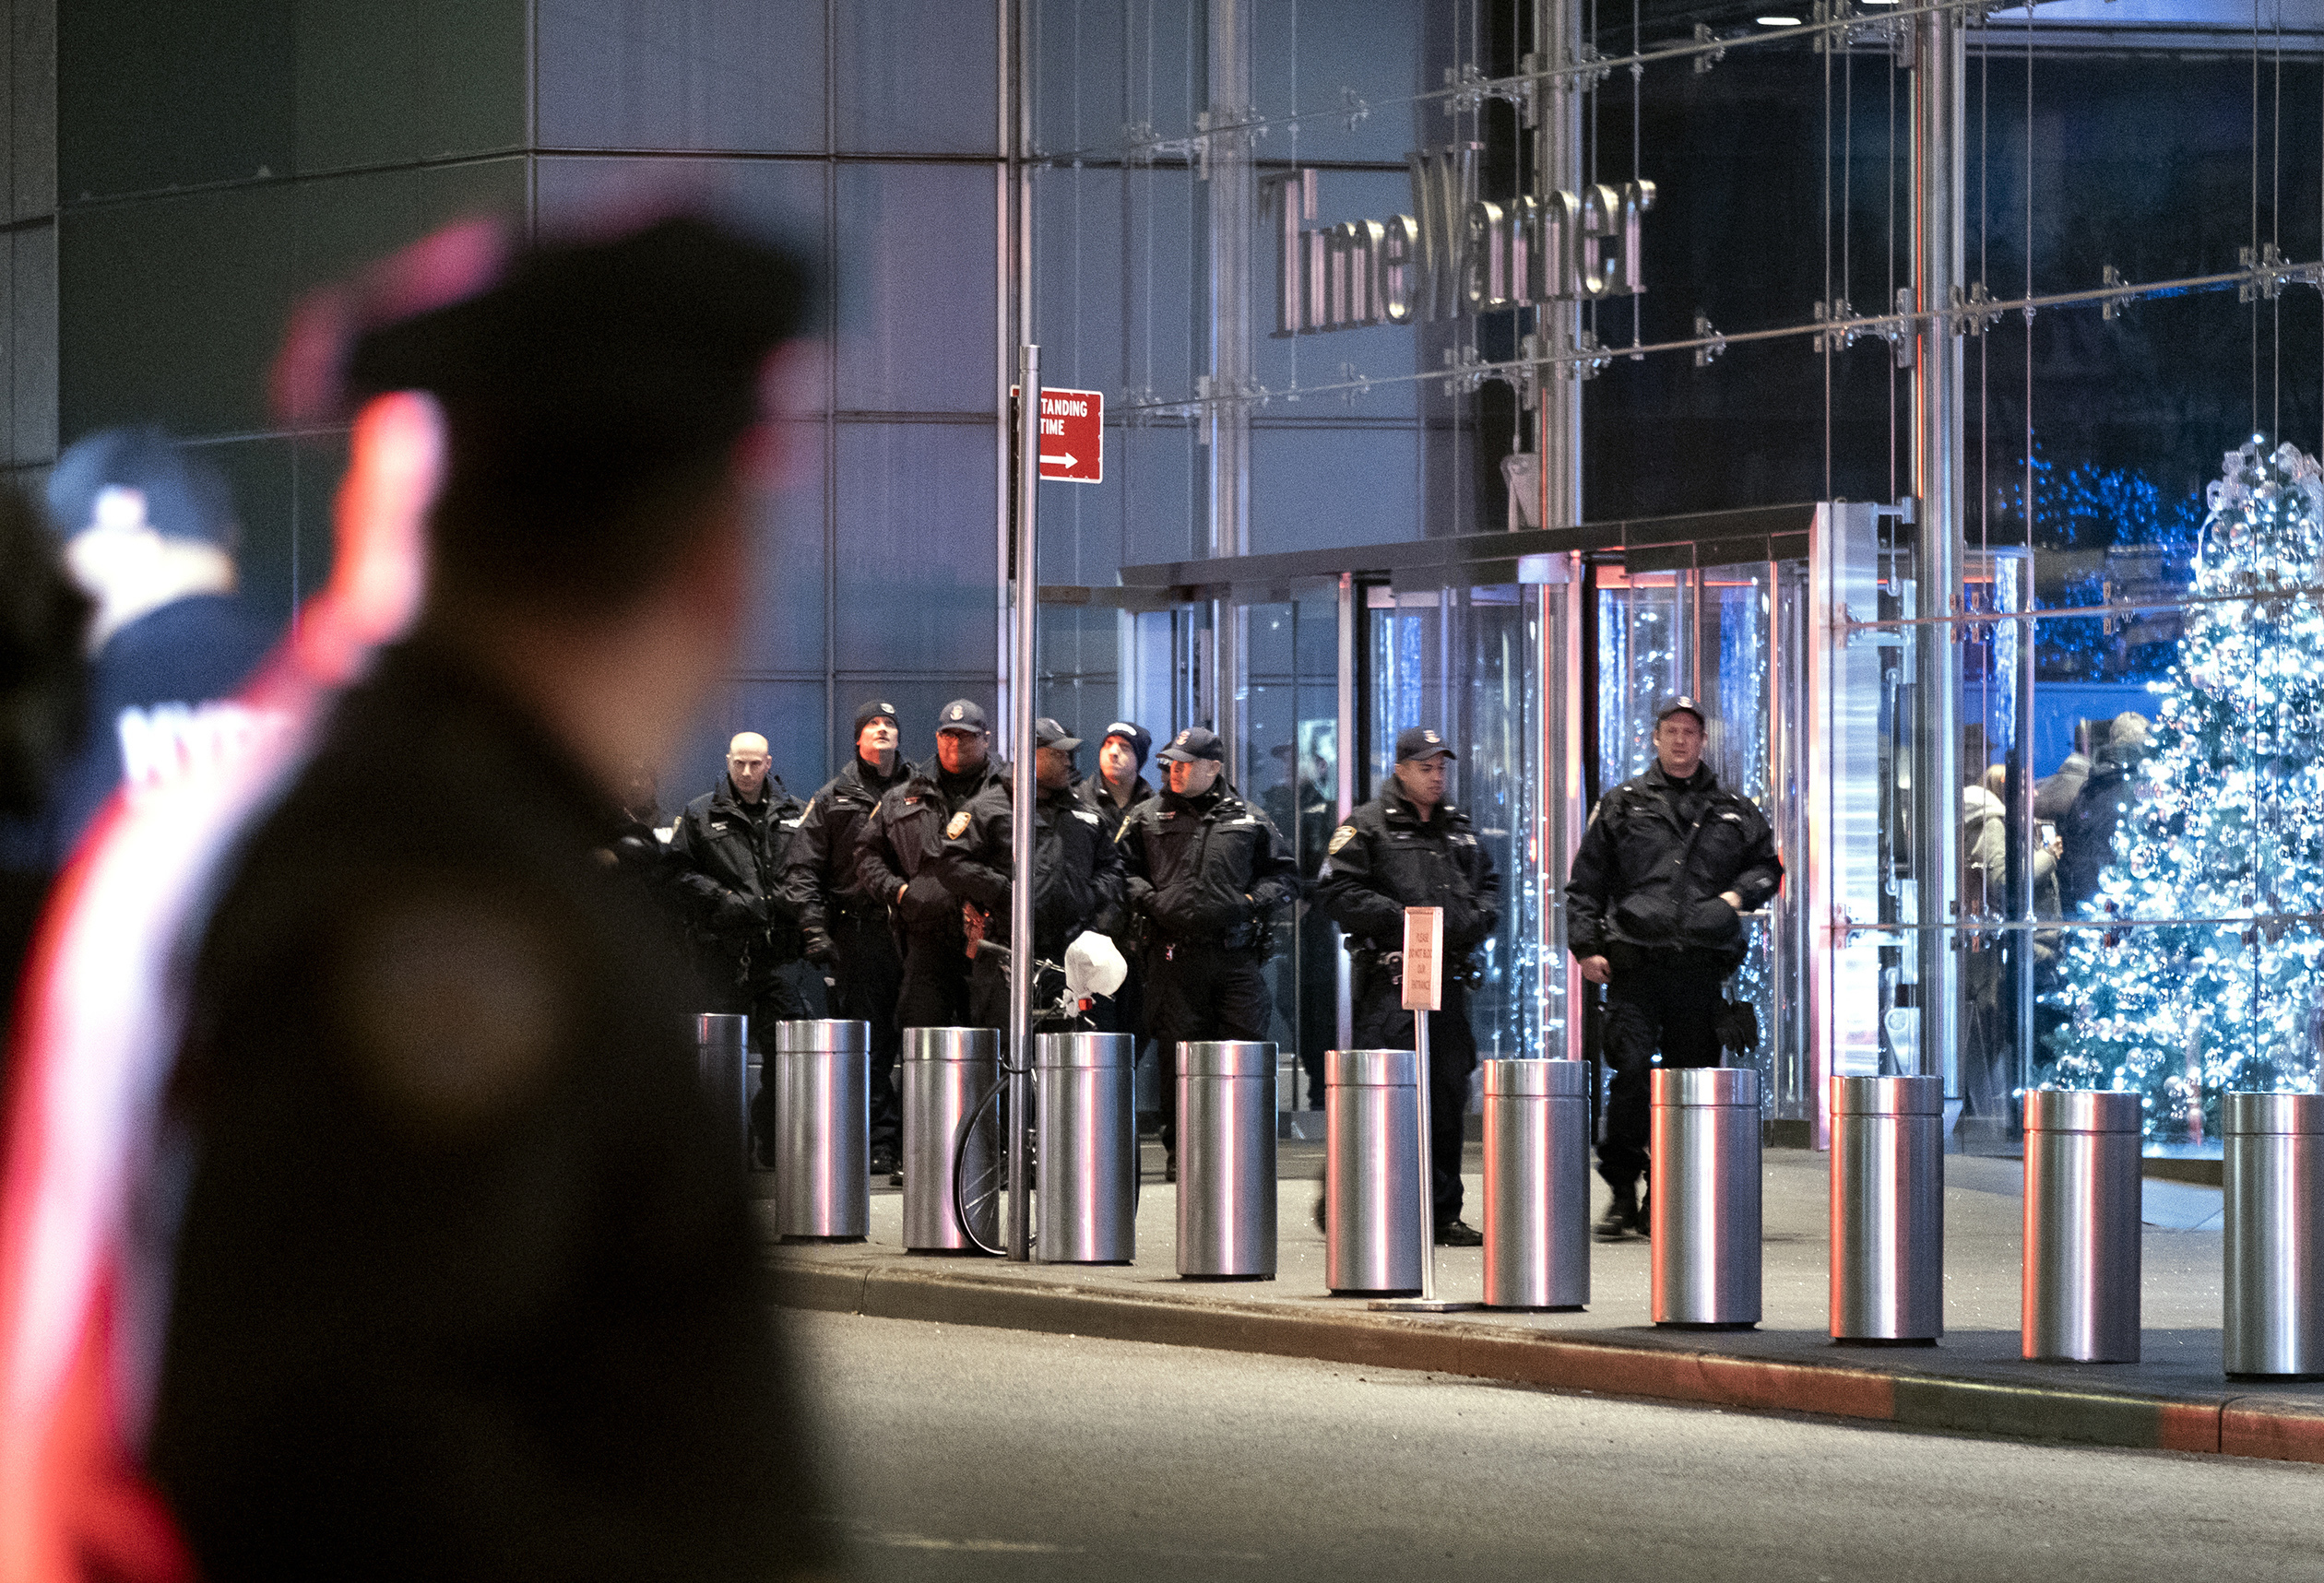 All clear after threat forces evacuation of CNN offices